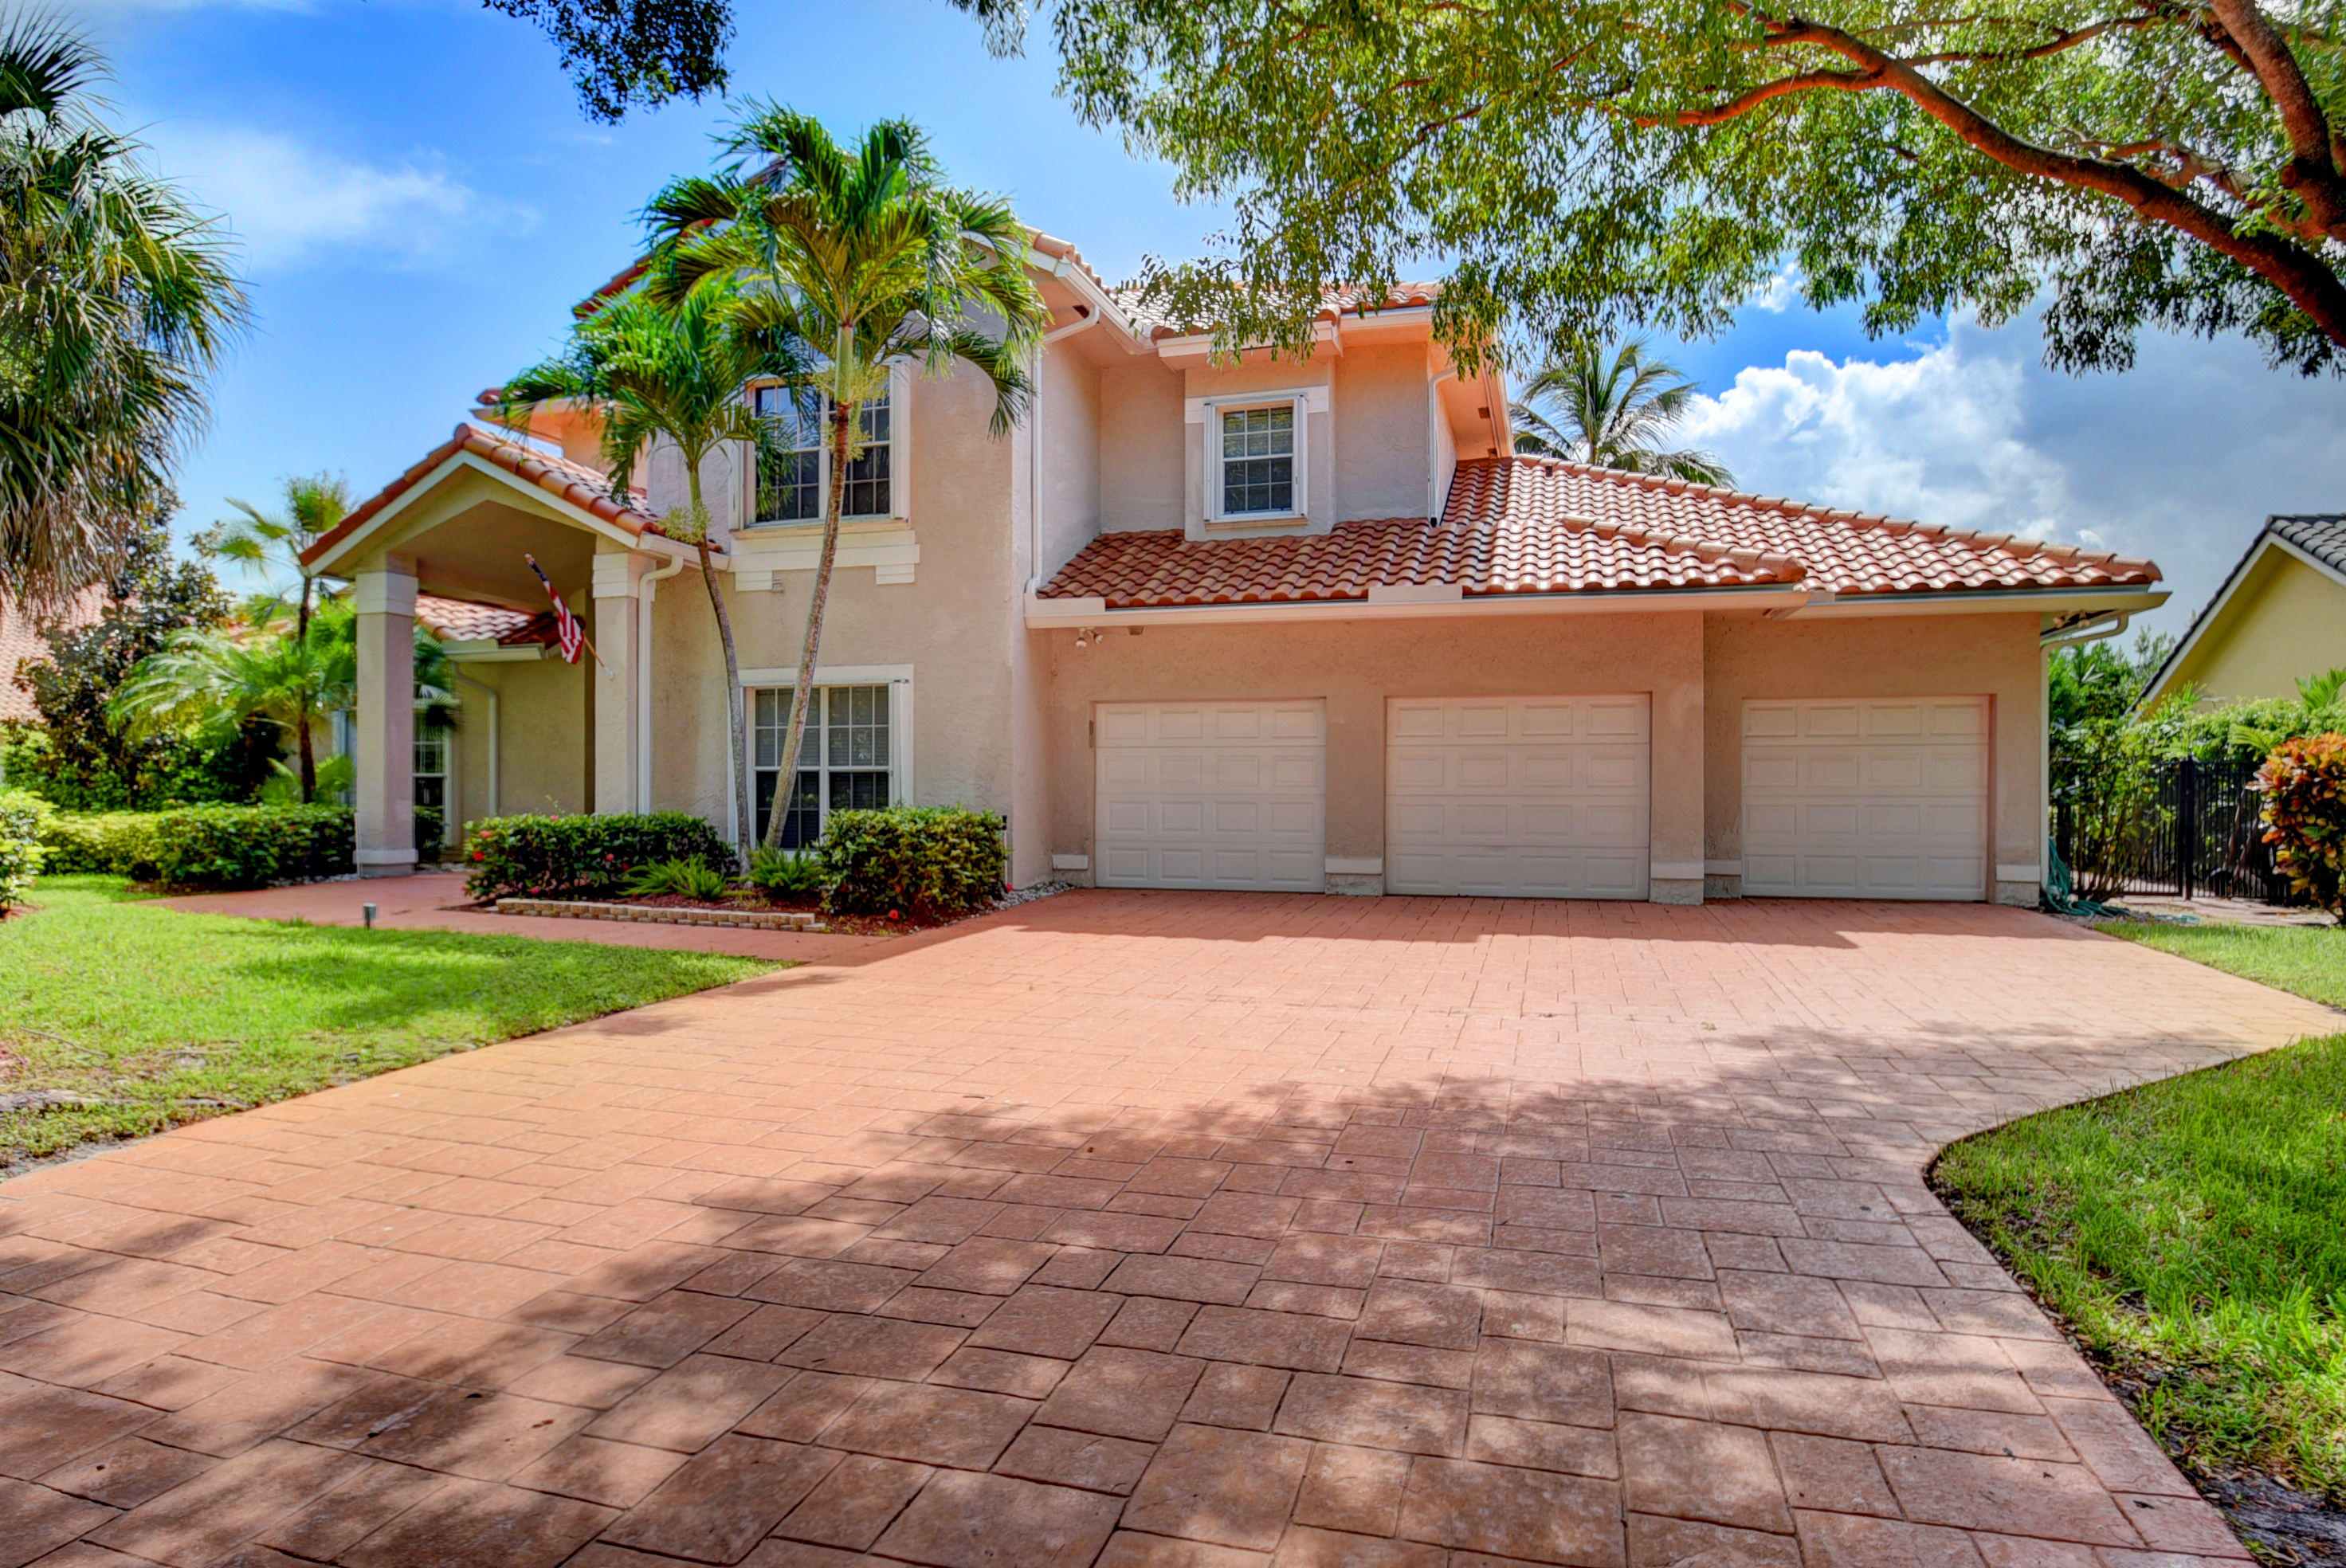 Home for sale in Rabbit Hollowe Delray Beach Florida